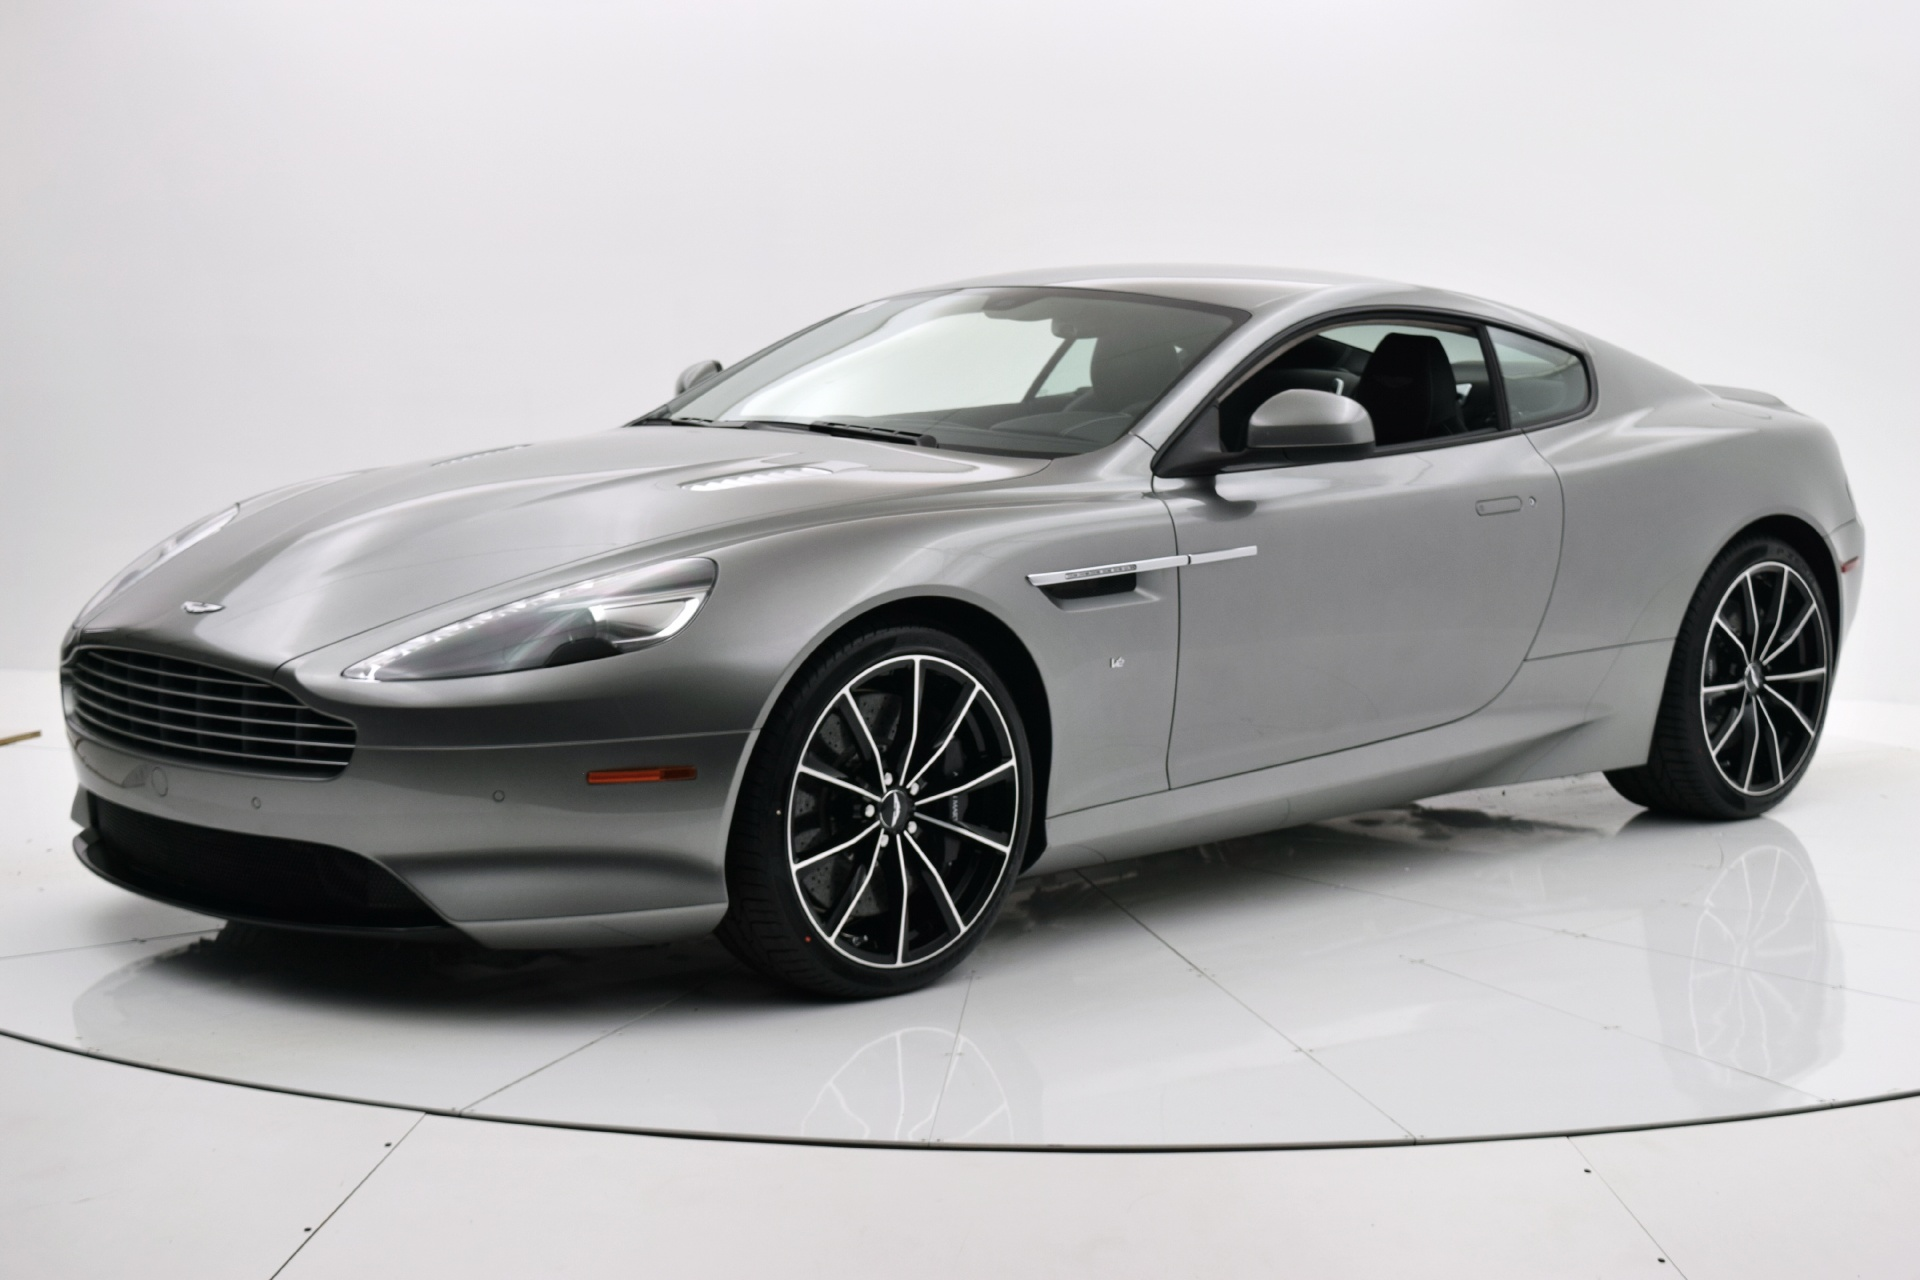 New 2016 Aston Martin Db9 Gt Coupe For Sale 215 211 F C Kerbeck Aston Martin Stock 16a104